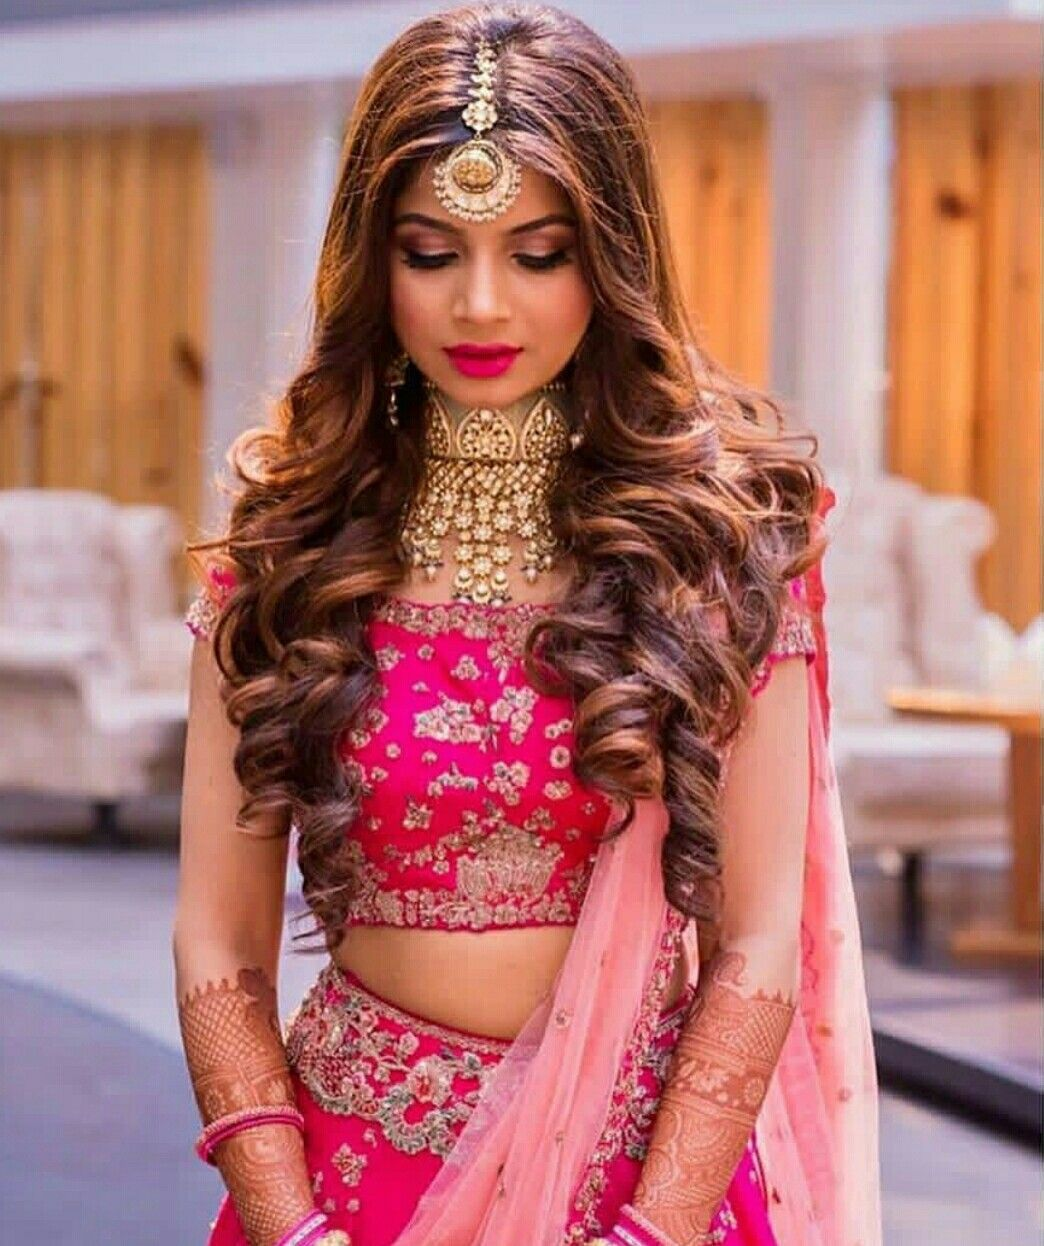 pin by aghna masood on makeup looks in 2019 | wedding hairstyles